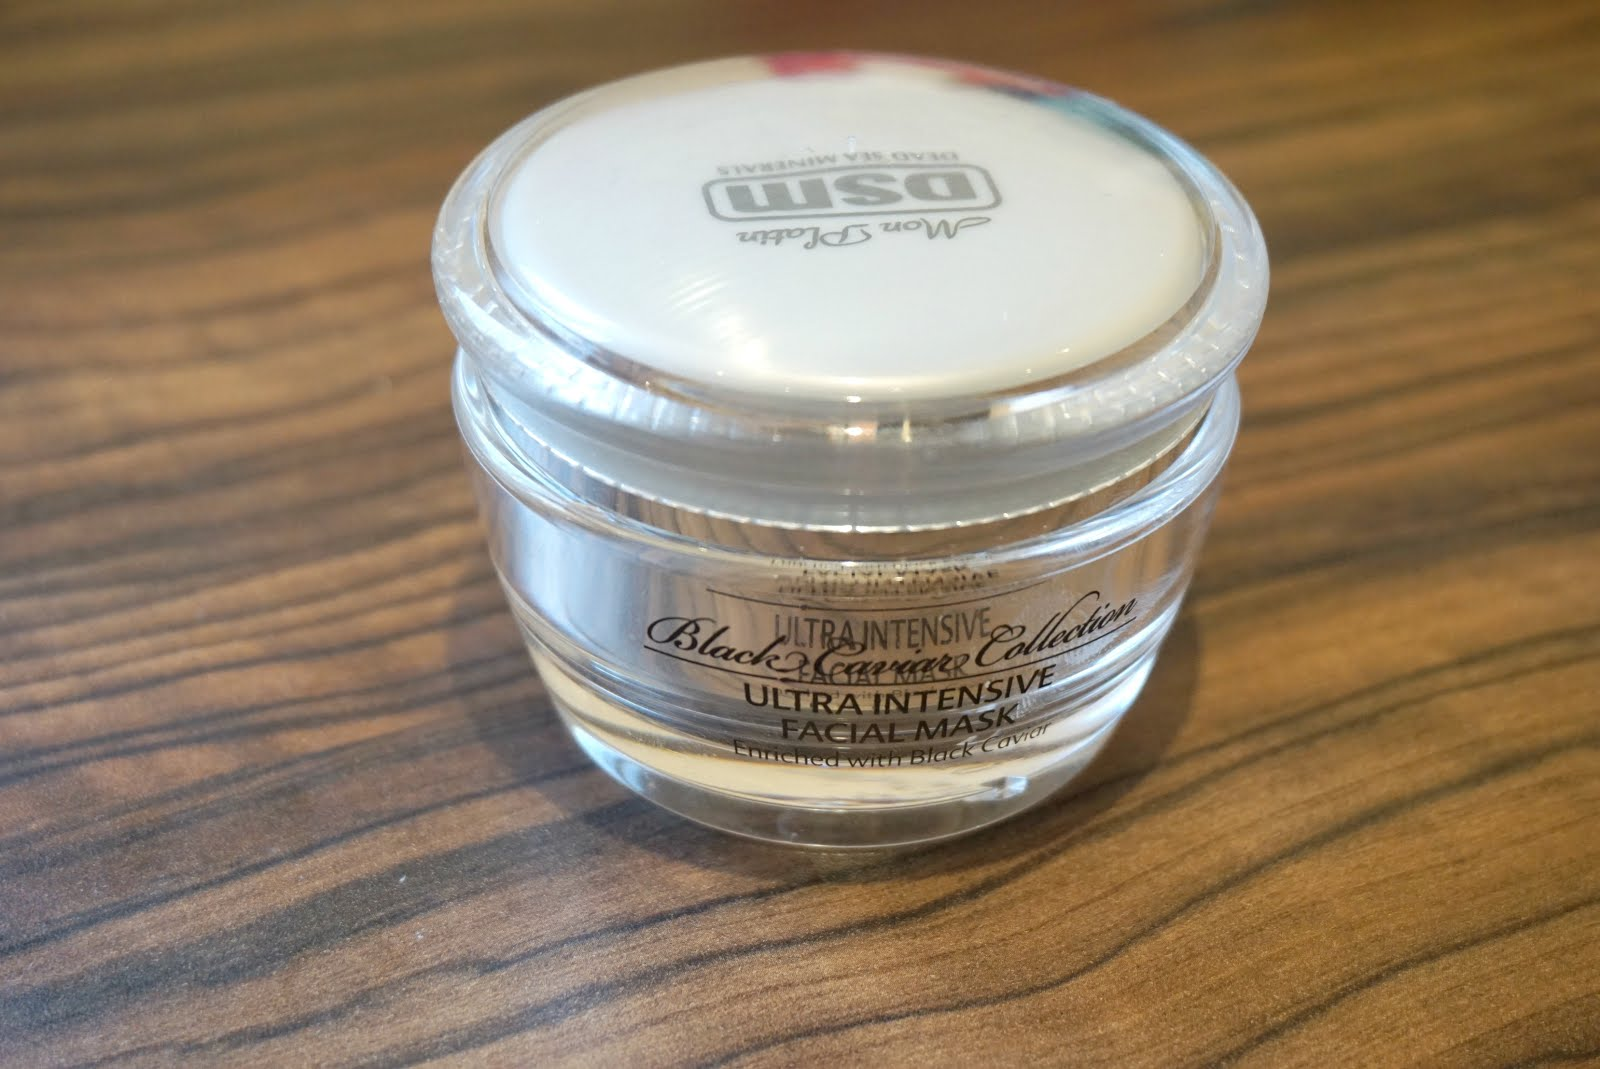 Mon Platin, DSM, Dead Sea Minerals, Black Caviar Ultra Intensive Facial Mask